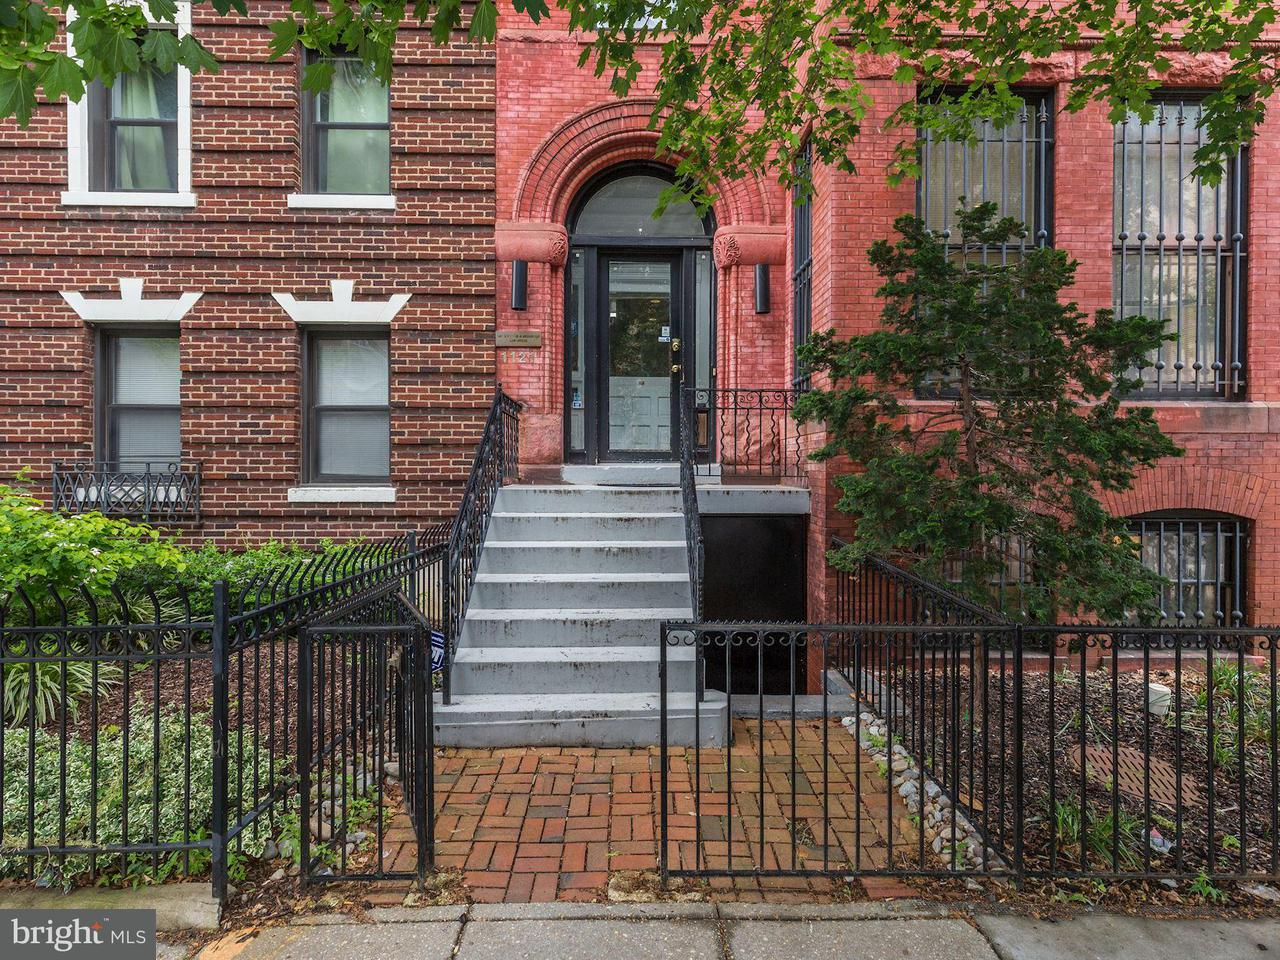 Commercial for Sale at 1121 12TH ST NW 1121 12TH ST NW Washington, District Of Columbia 20005 United States